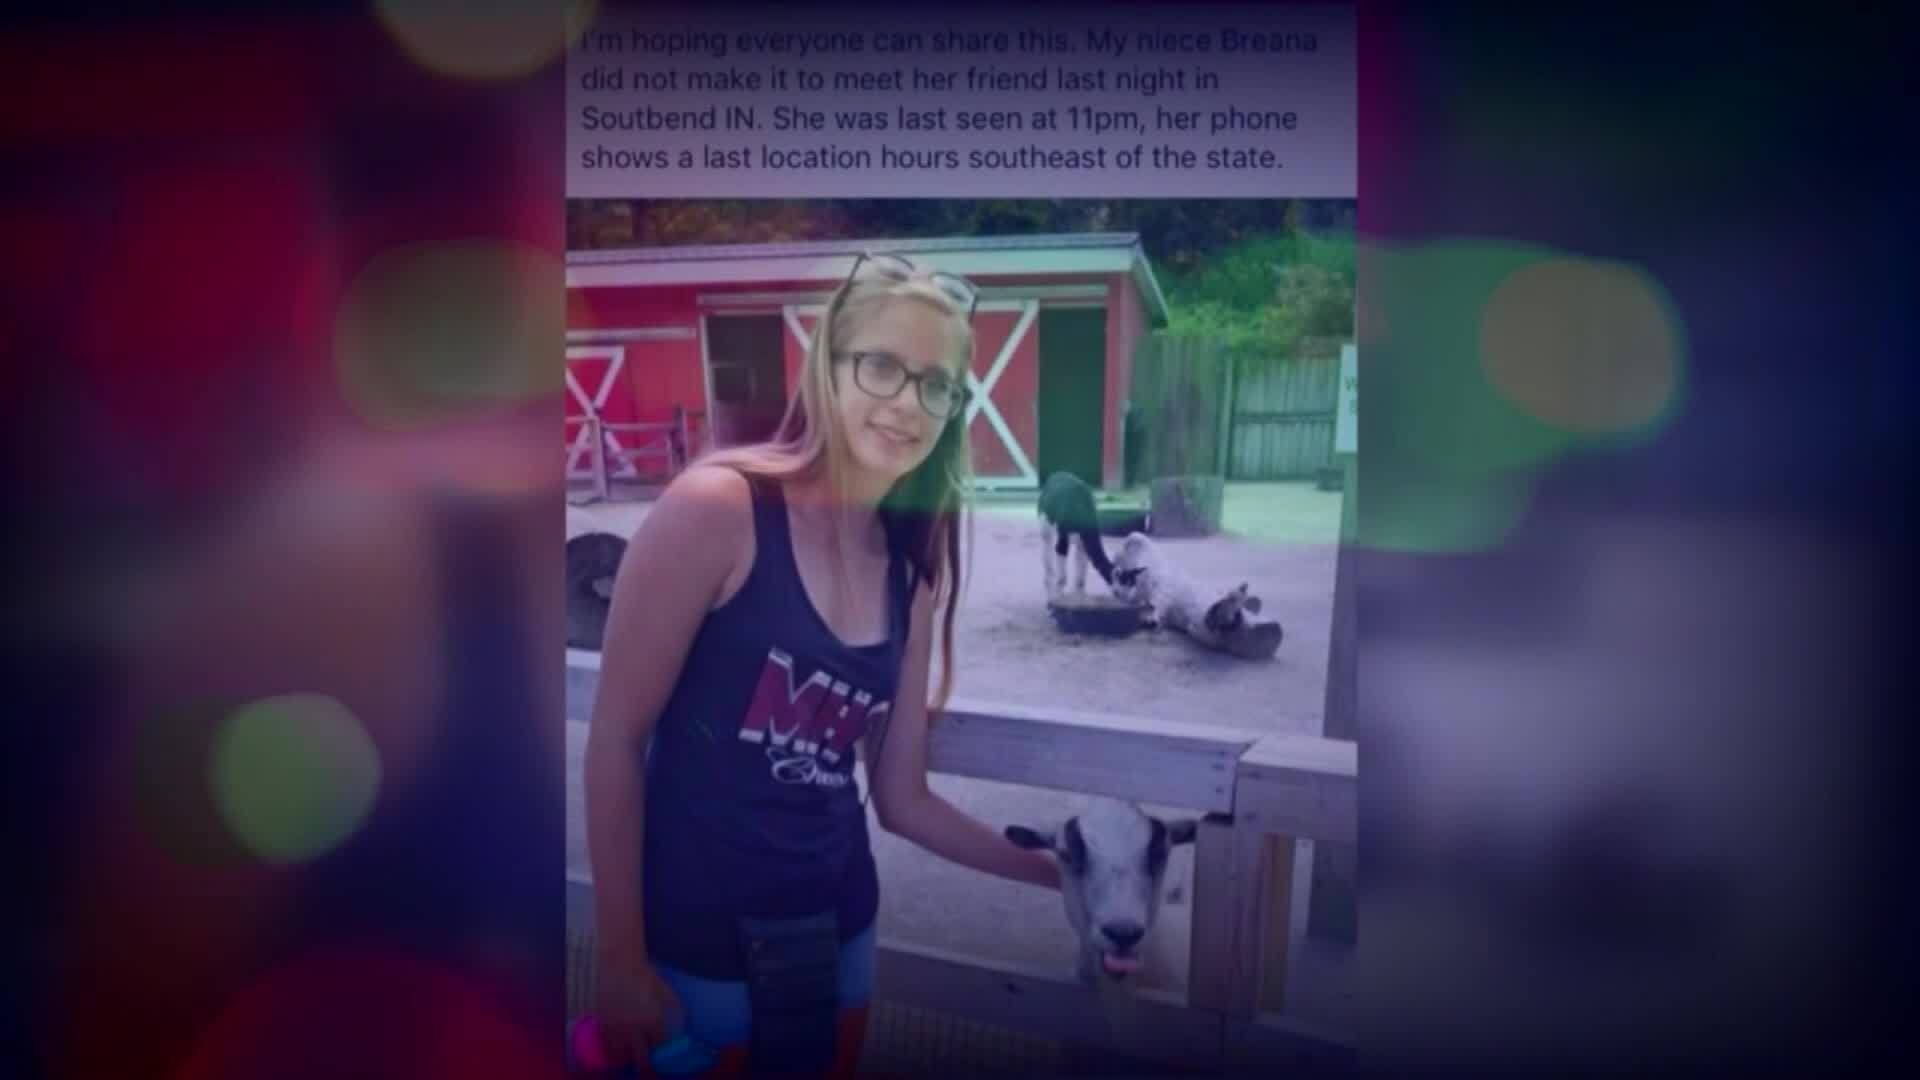 VIDEO: Body of pregnant cheerleader found in dumpster; teen arrested